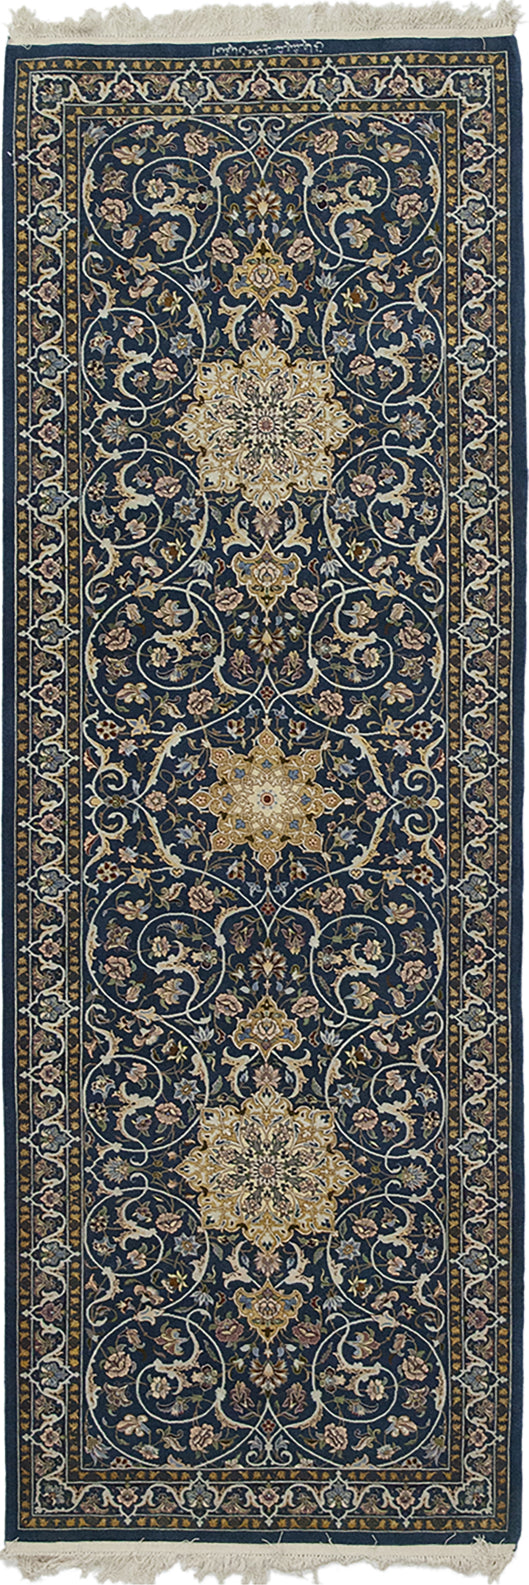 Solo Rugs Isfahan Sylvia M5990-7806 Prussian Area Rug main image